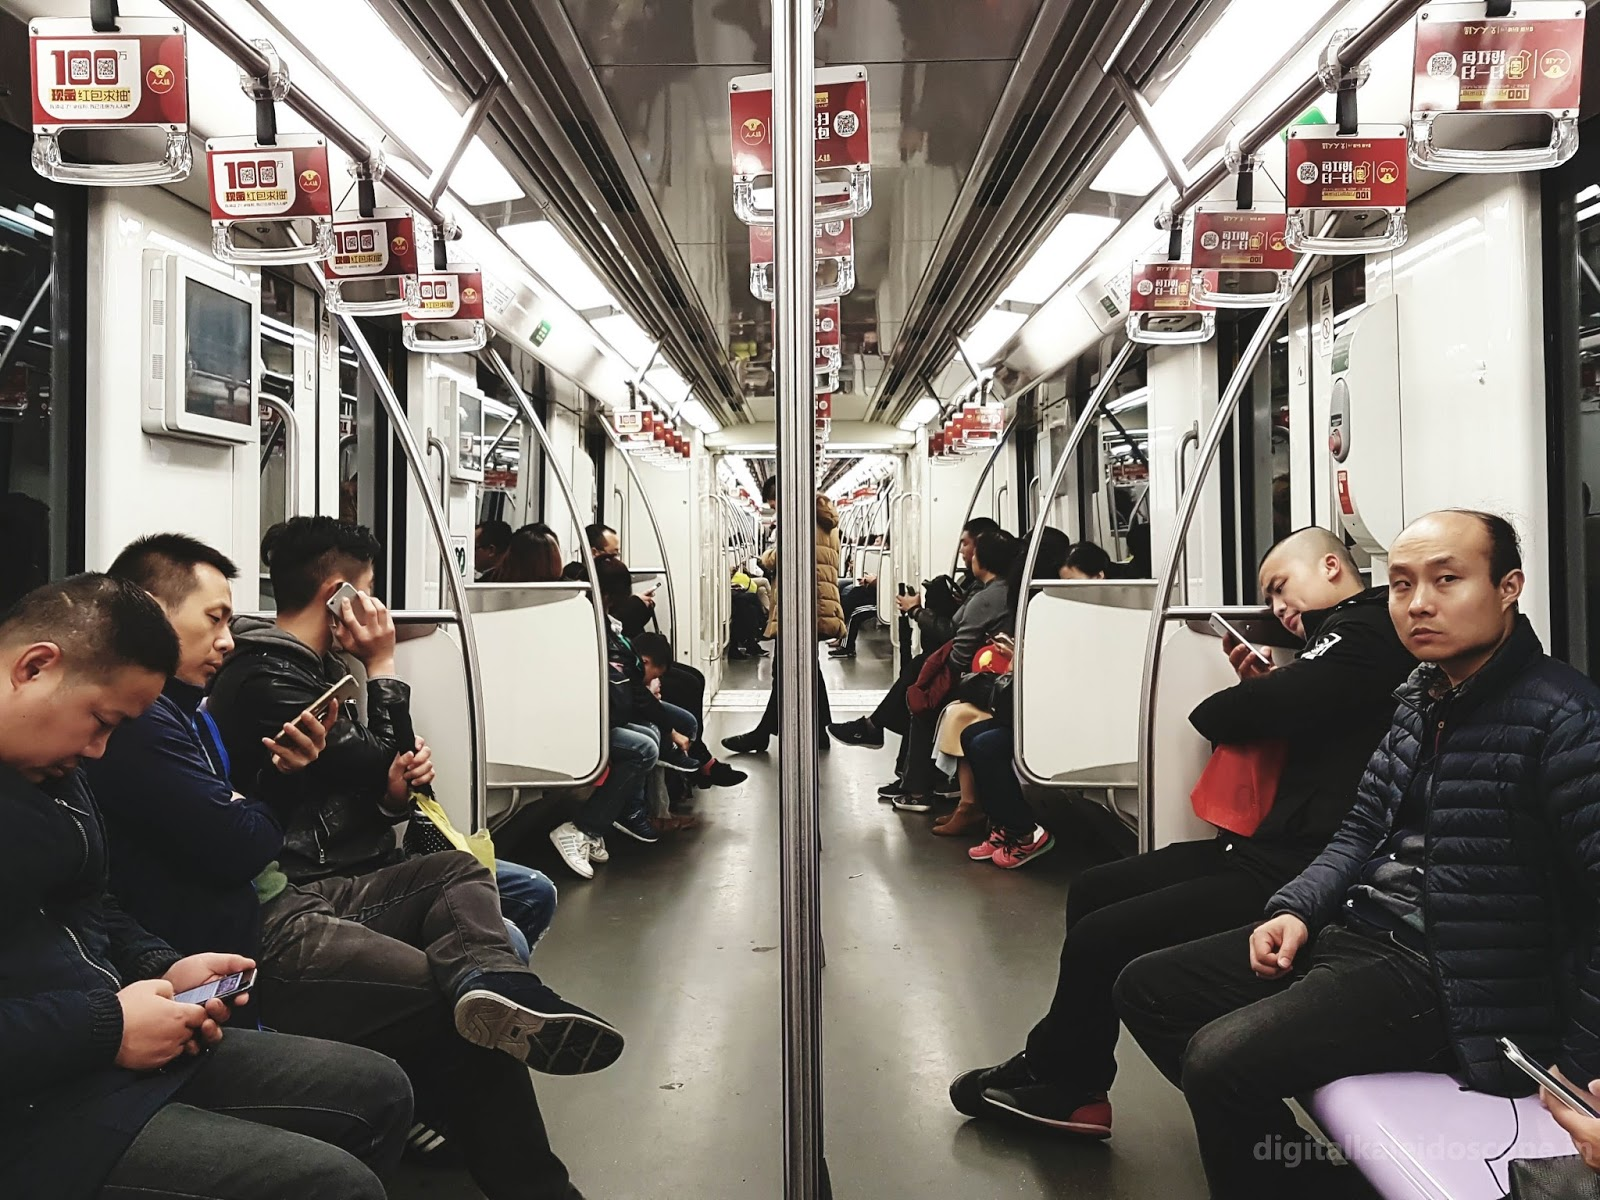 Photo taken inside shanghai Metro